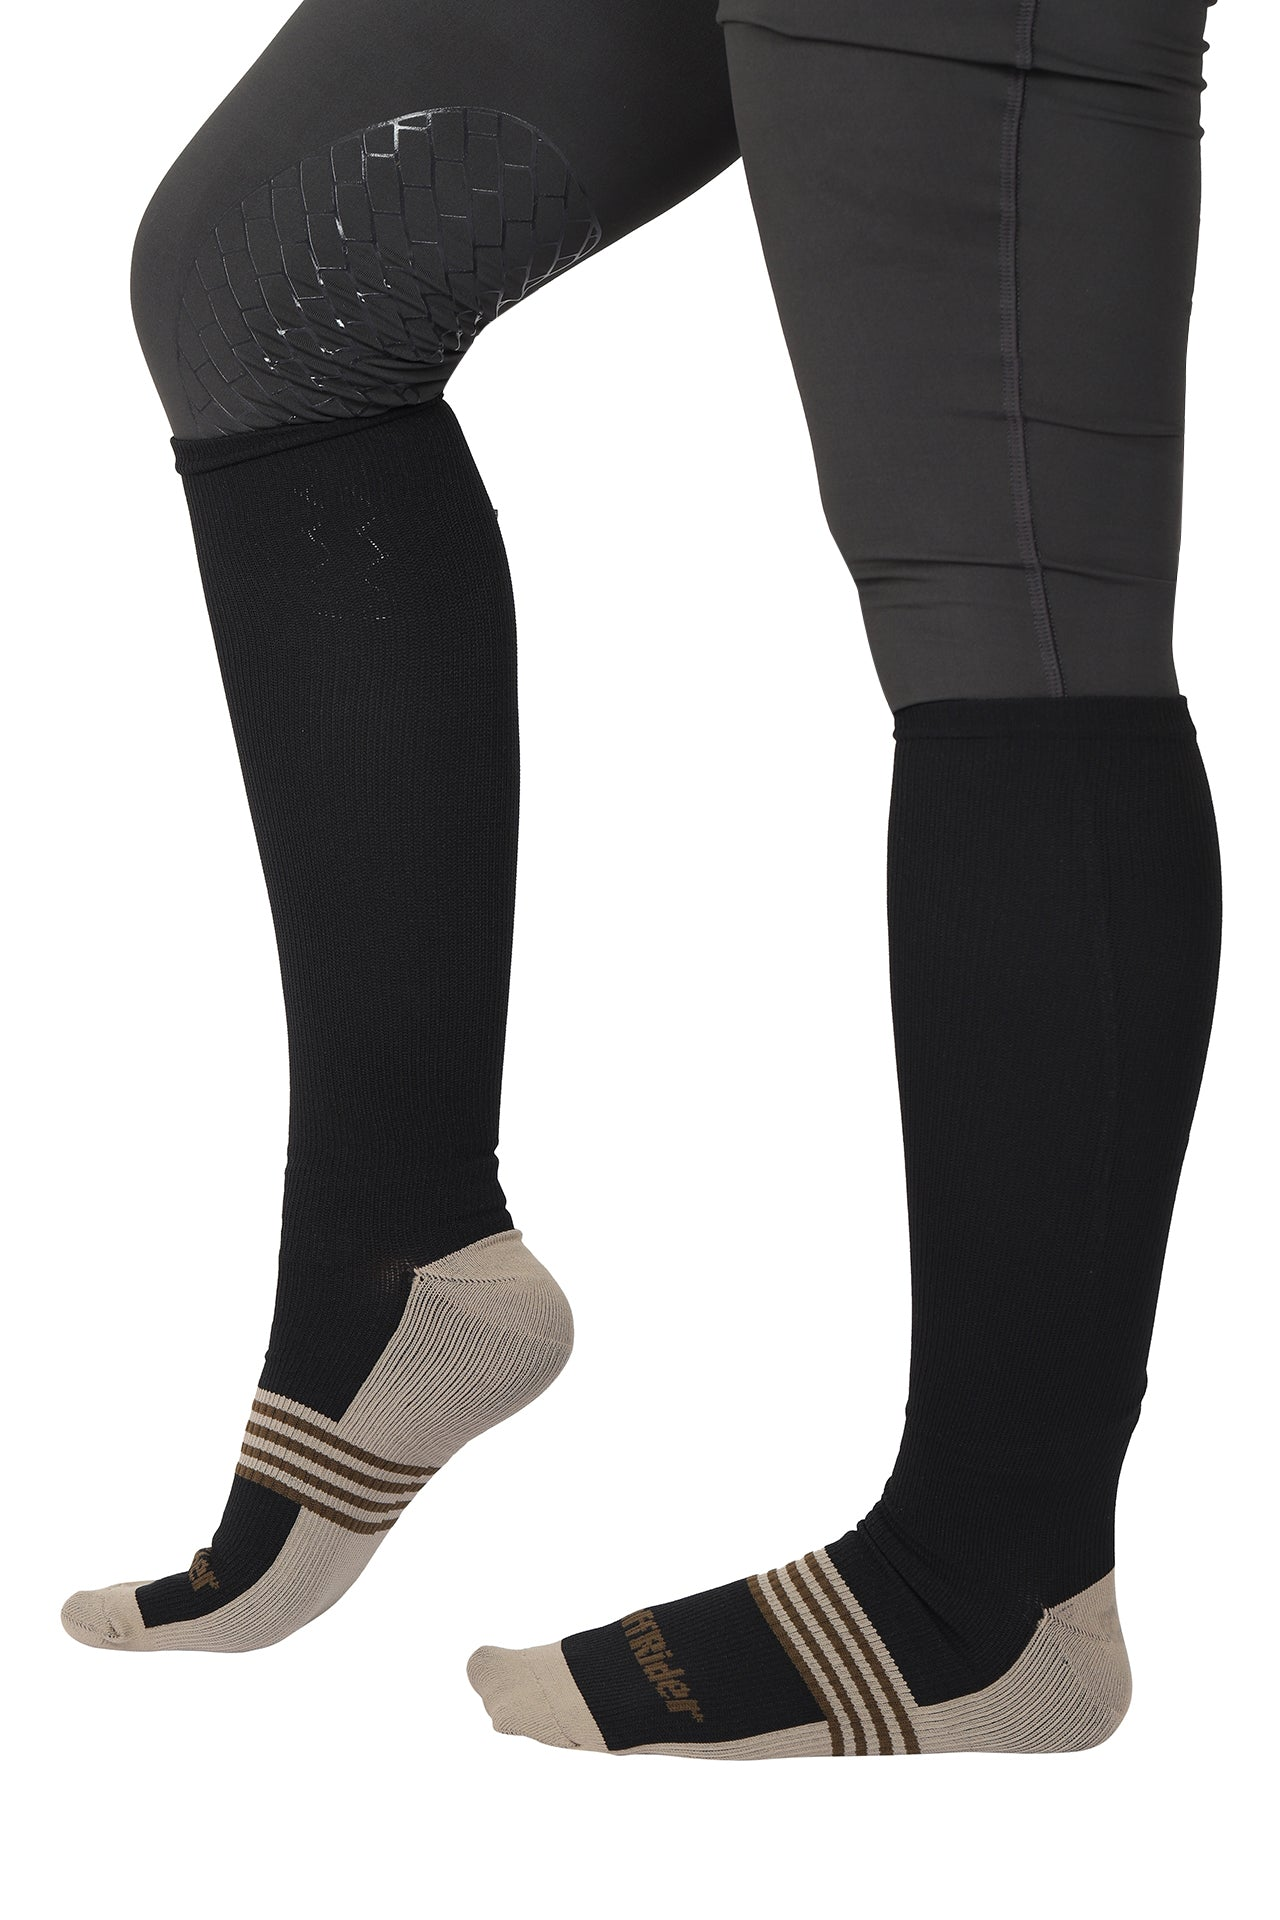 TuffRider Compression Riding Socks_1